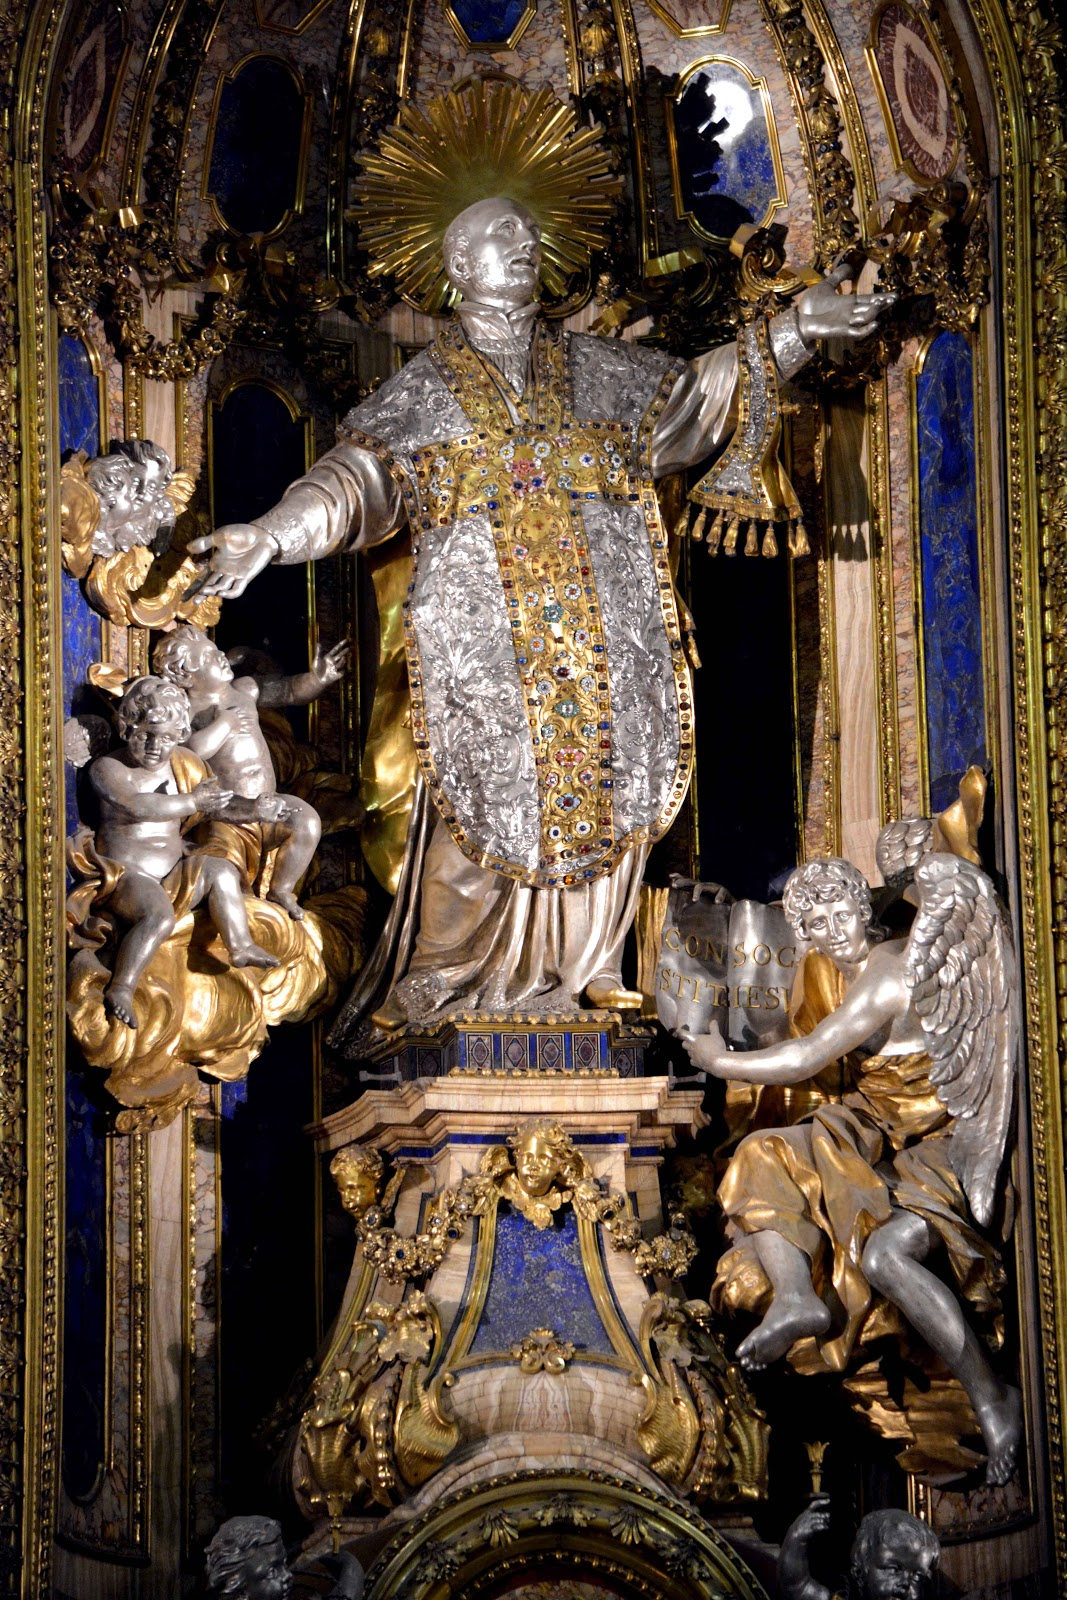 Statue of Ignatius of Loyola covered in gilding and decorations.